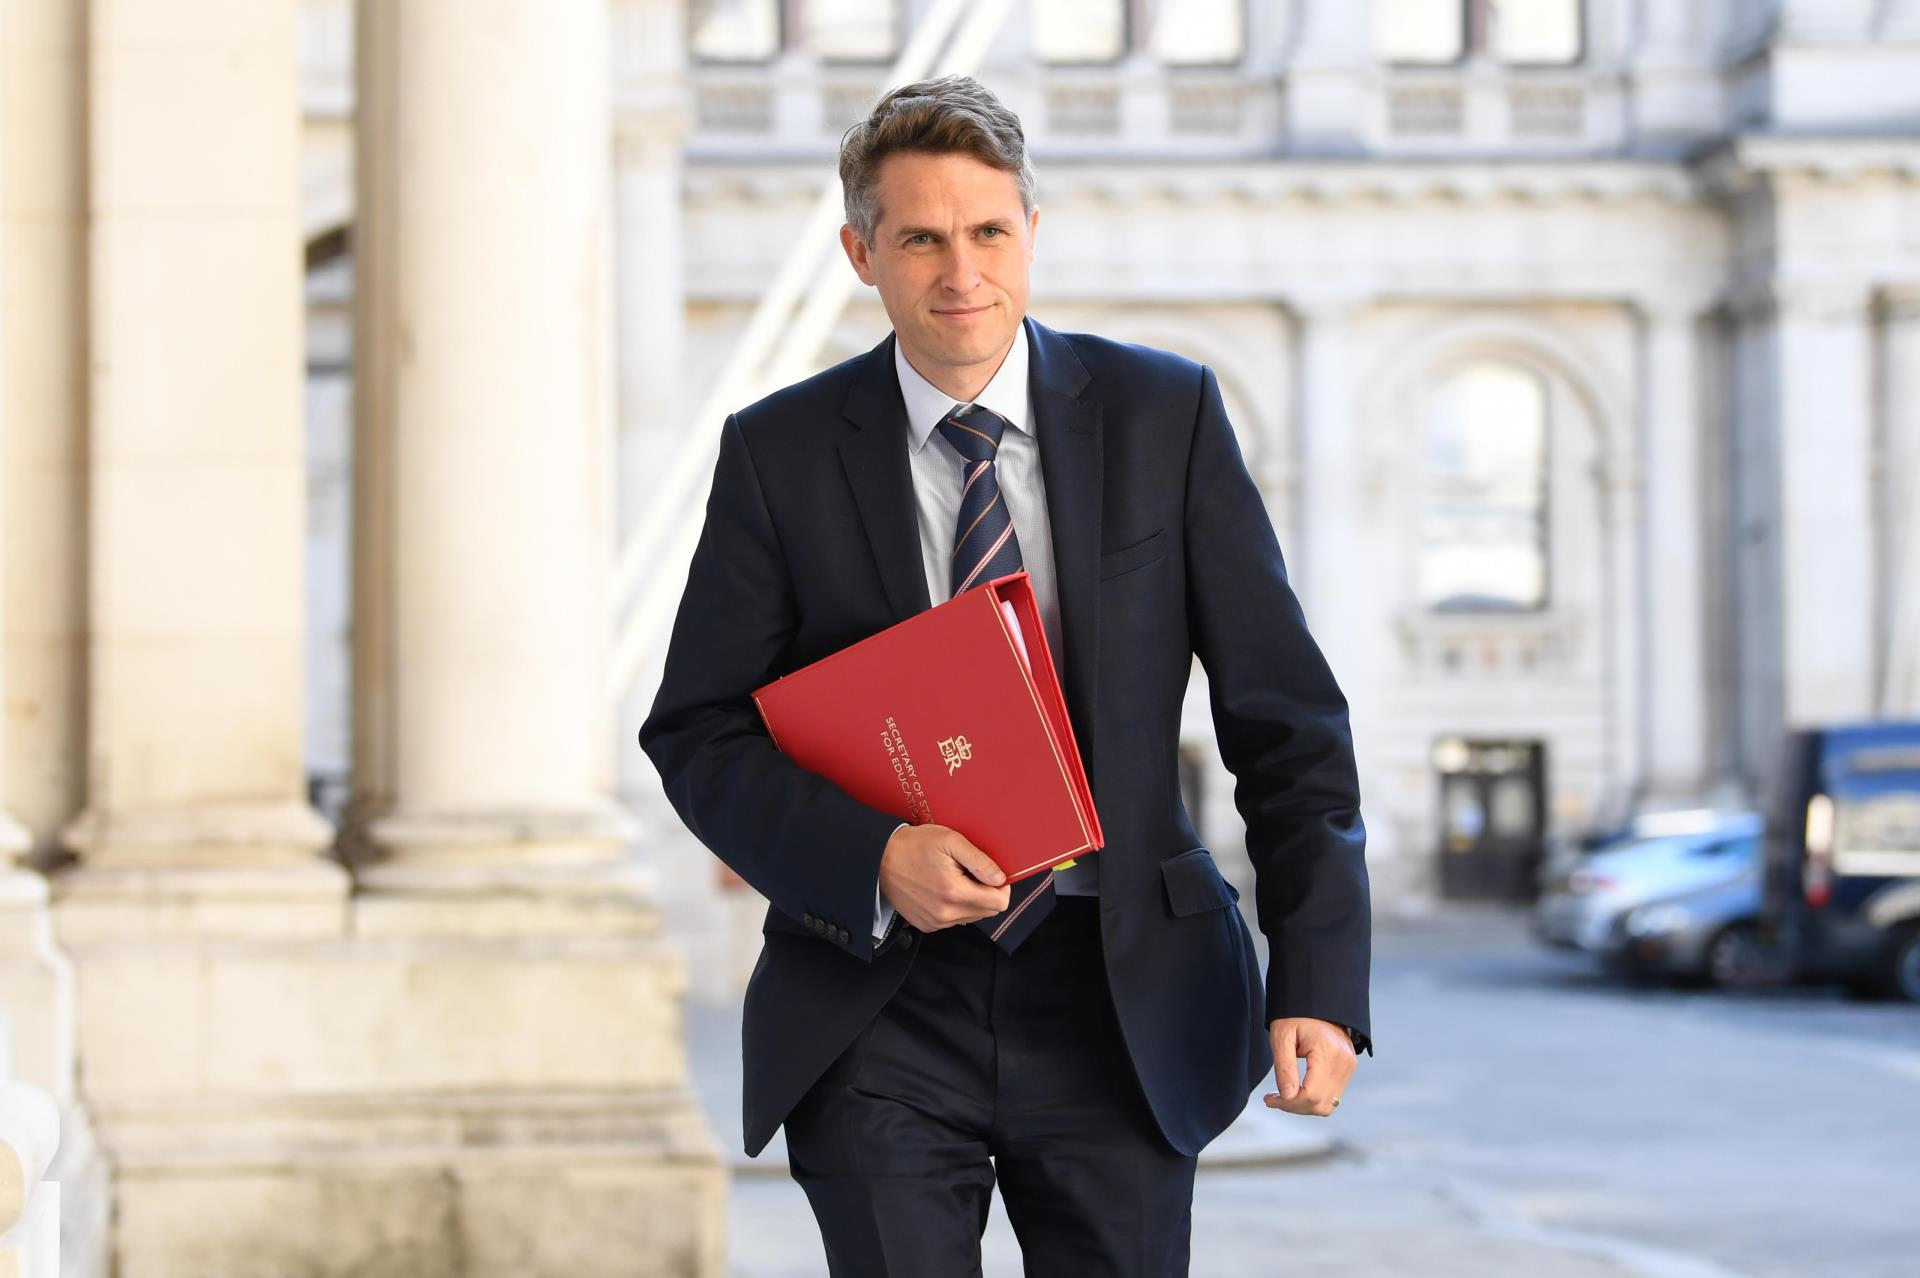 Secretary of State for Education Gavin Williamson arrives at the Foreign and Commonwealth Office (FCO) in London, ahead of a Cabinet meeting to be held at the FCO, for the first time since the lockdown.